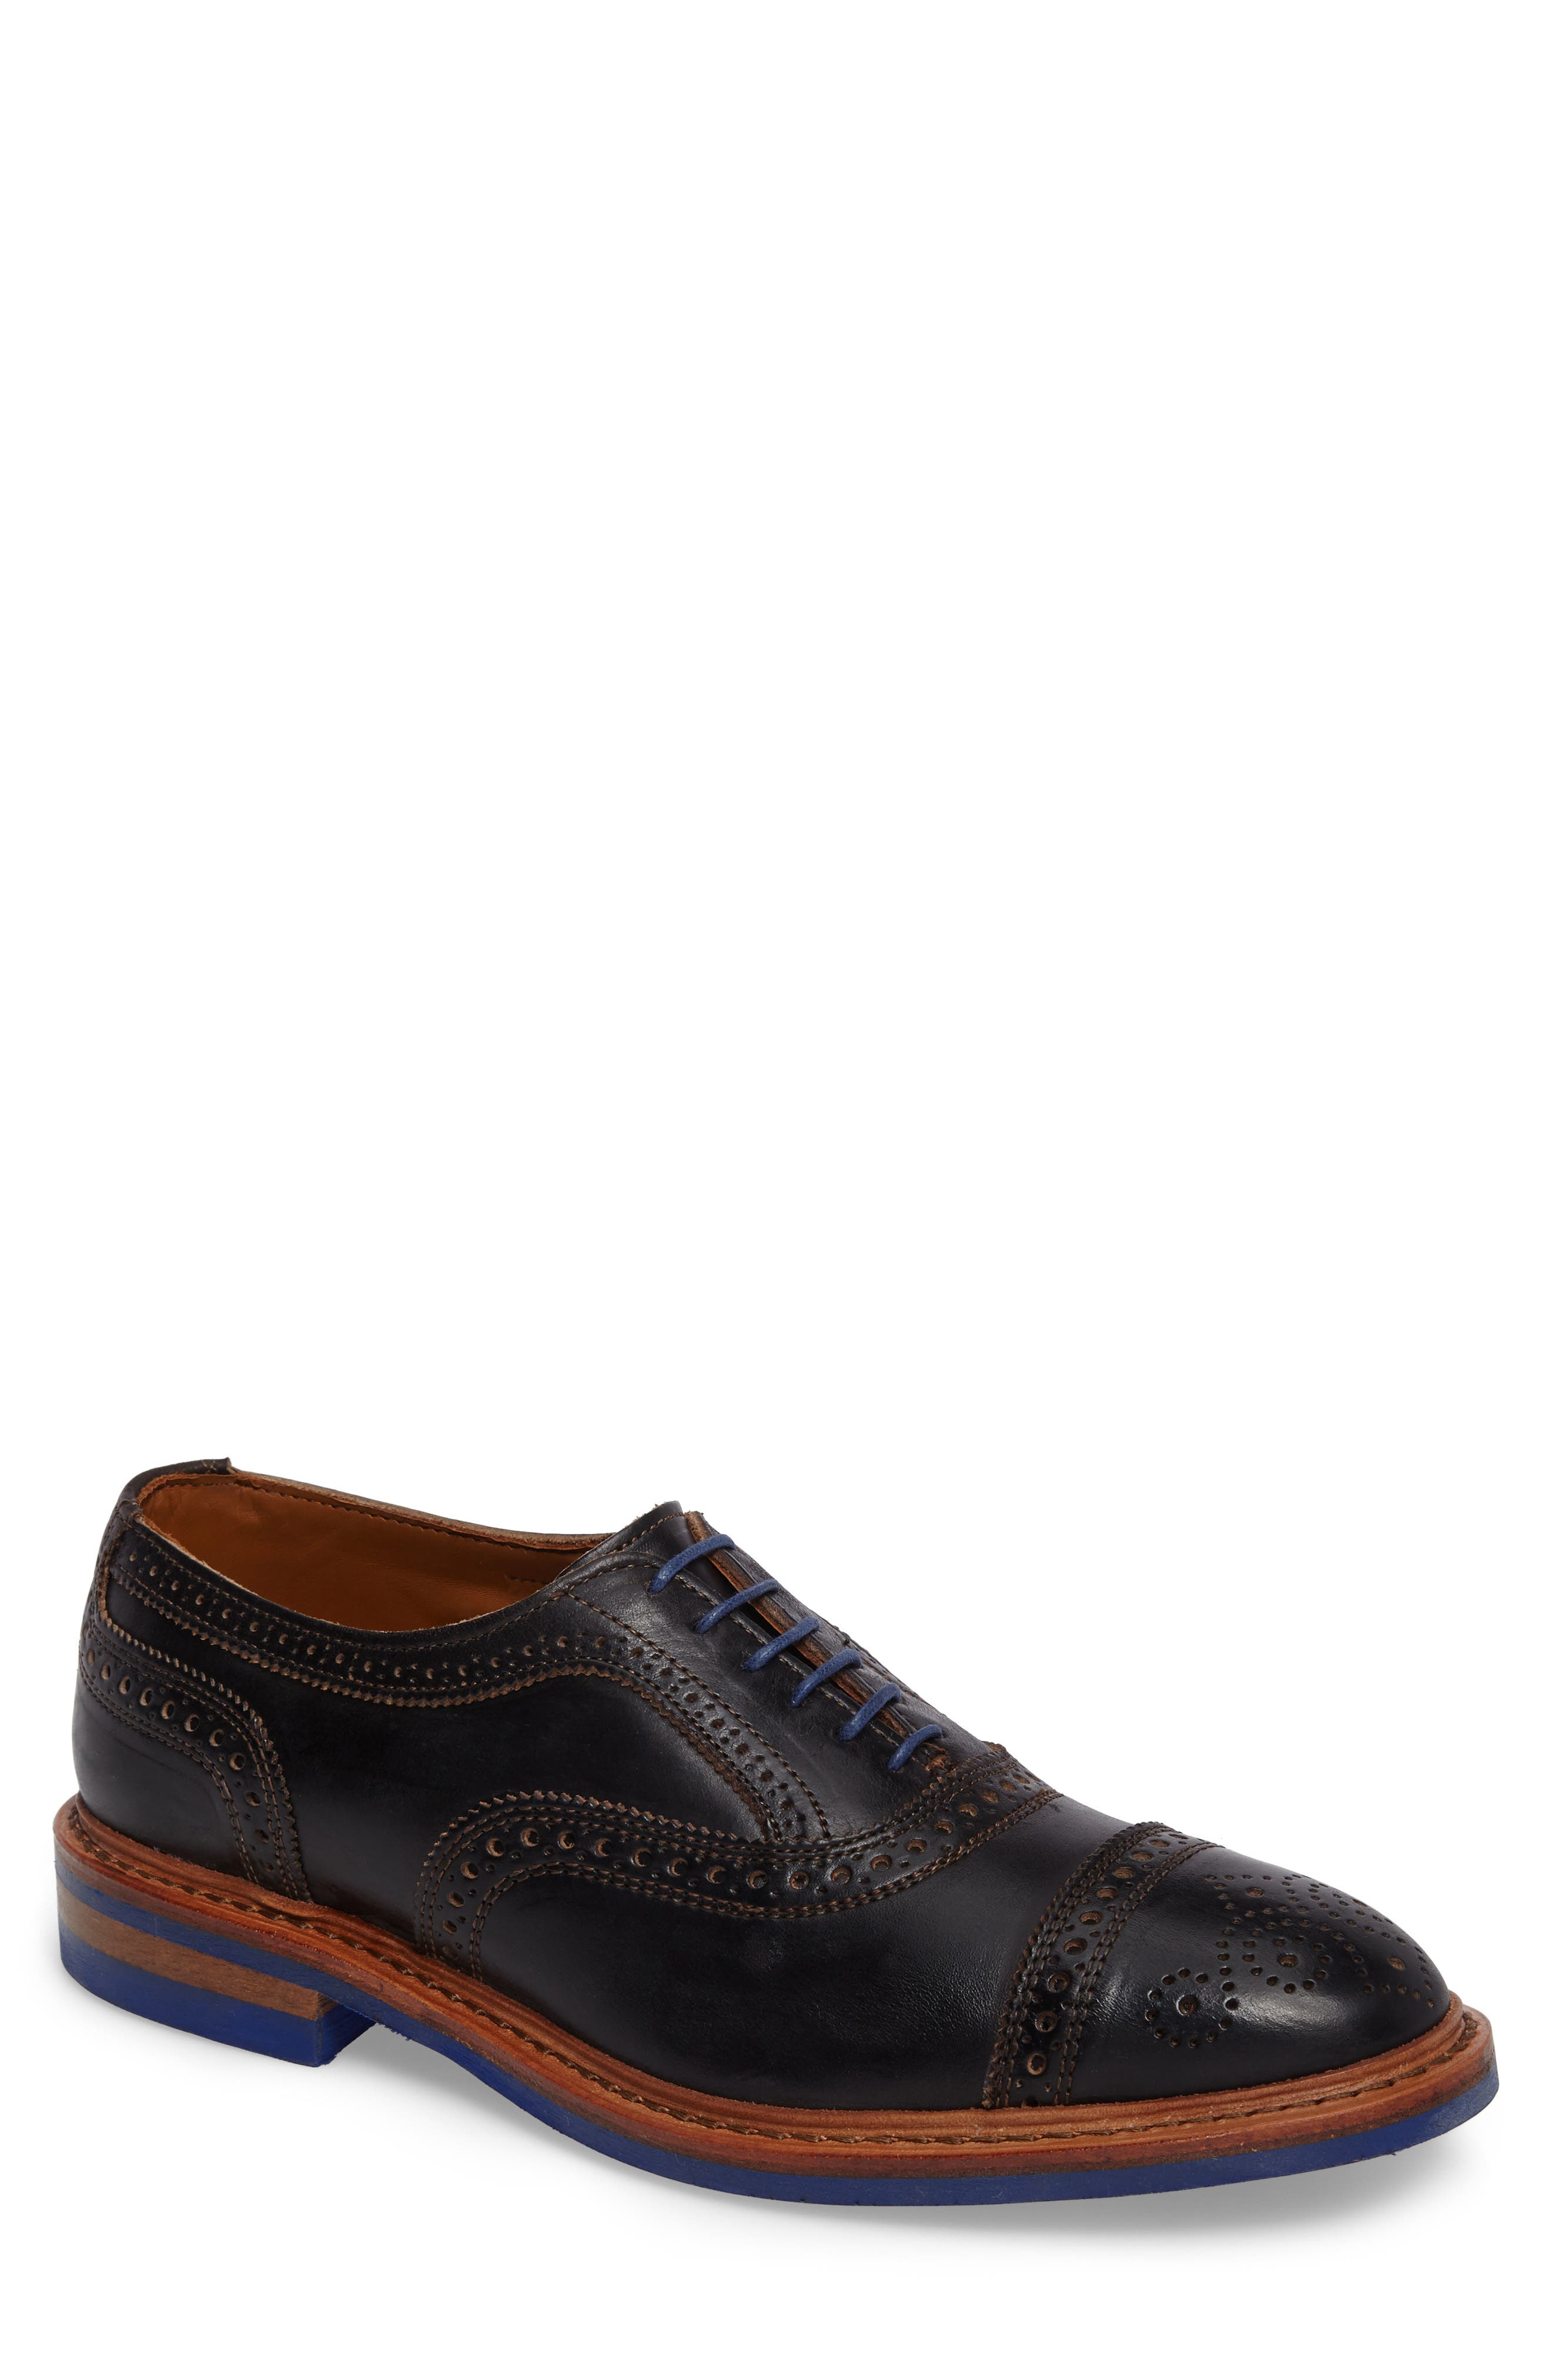 ALLEN EDMONDS, 'Strandmok' Cap Toe Oxford, Main thumbnail 1, color, BLACK LEATHER